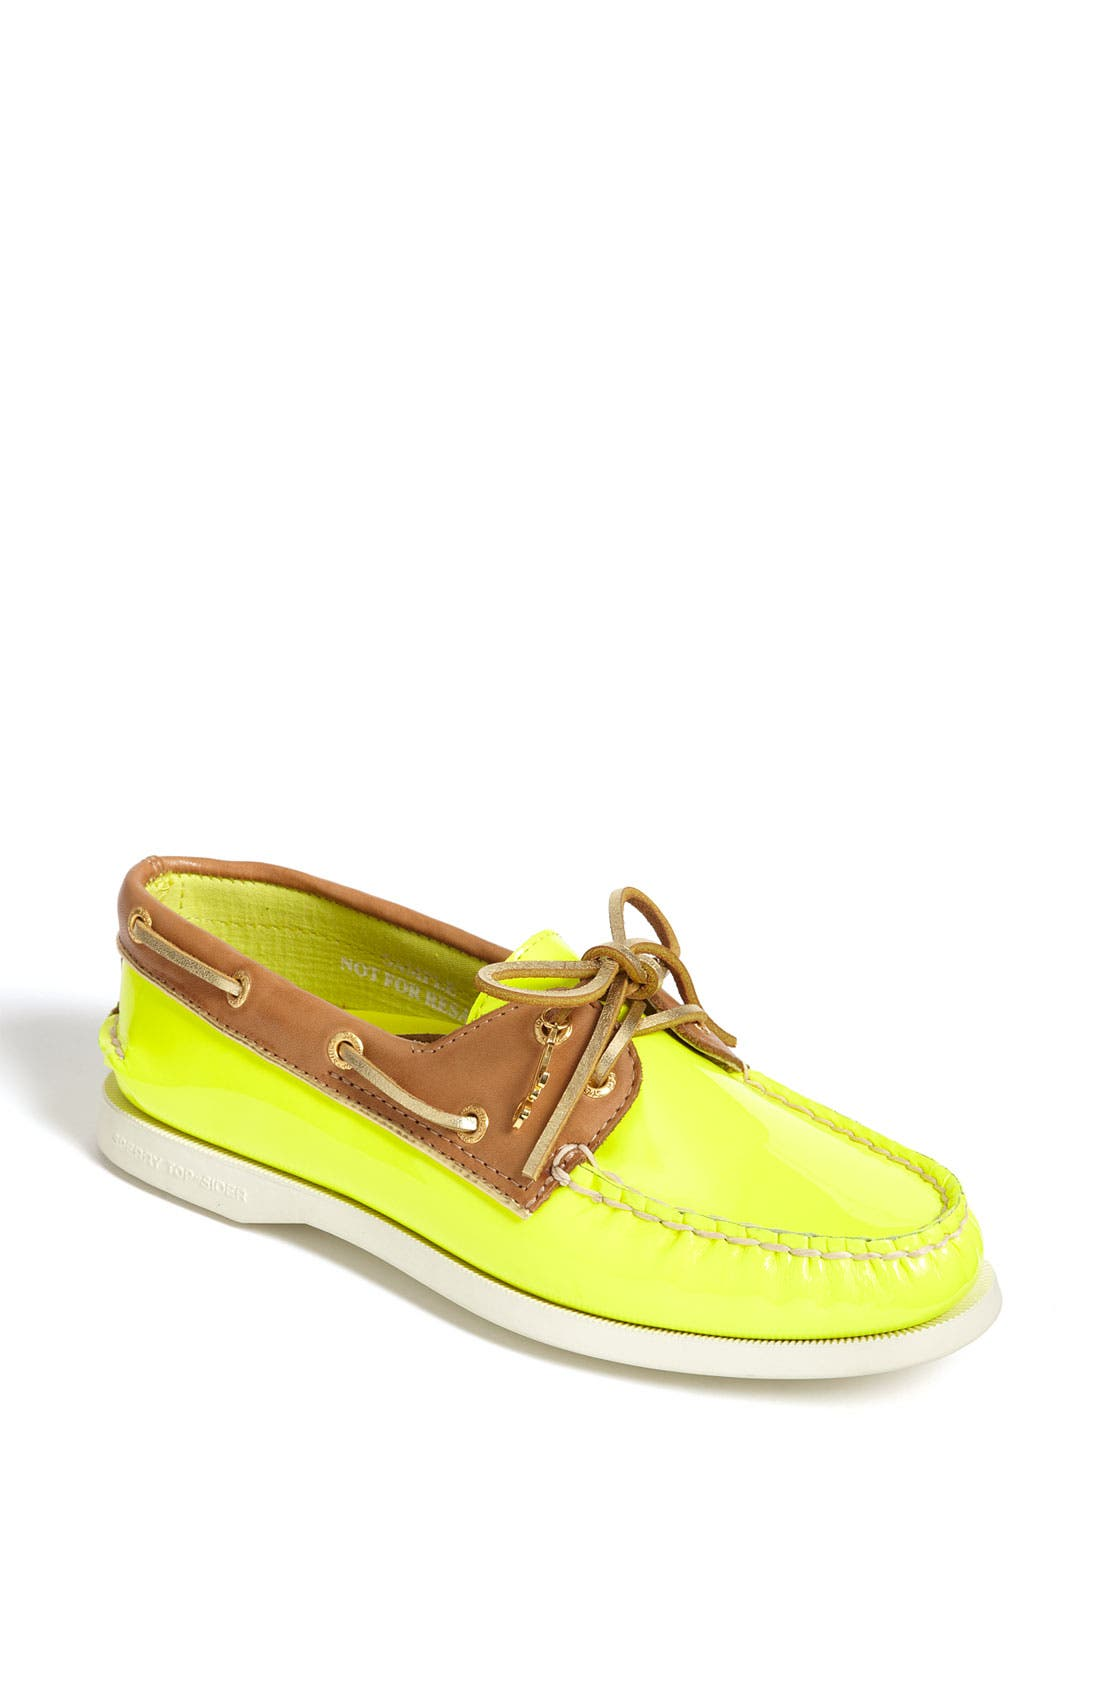 Alternate Image 1 Selected - Milly for Sperry Top-Sider® 'Authentic Original' Boat Shoe